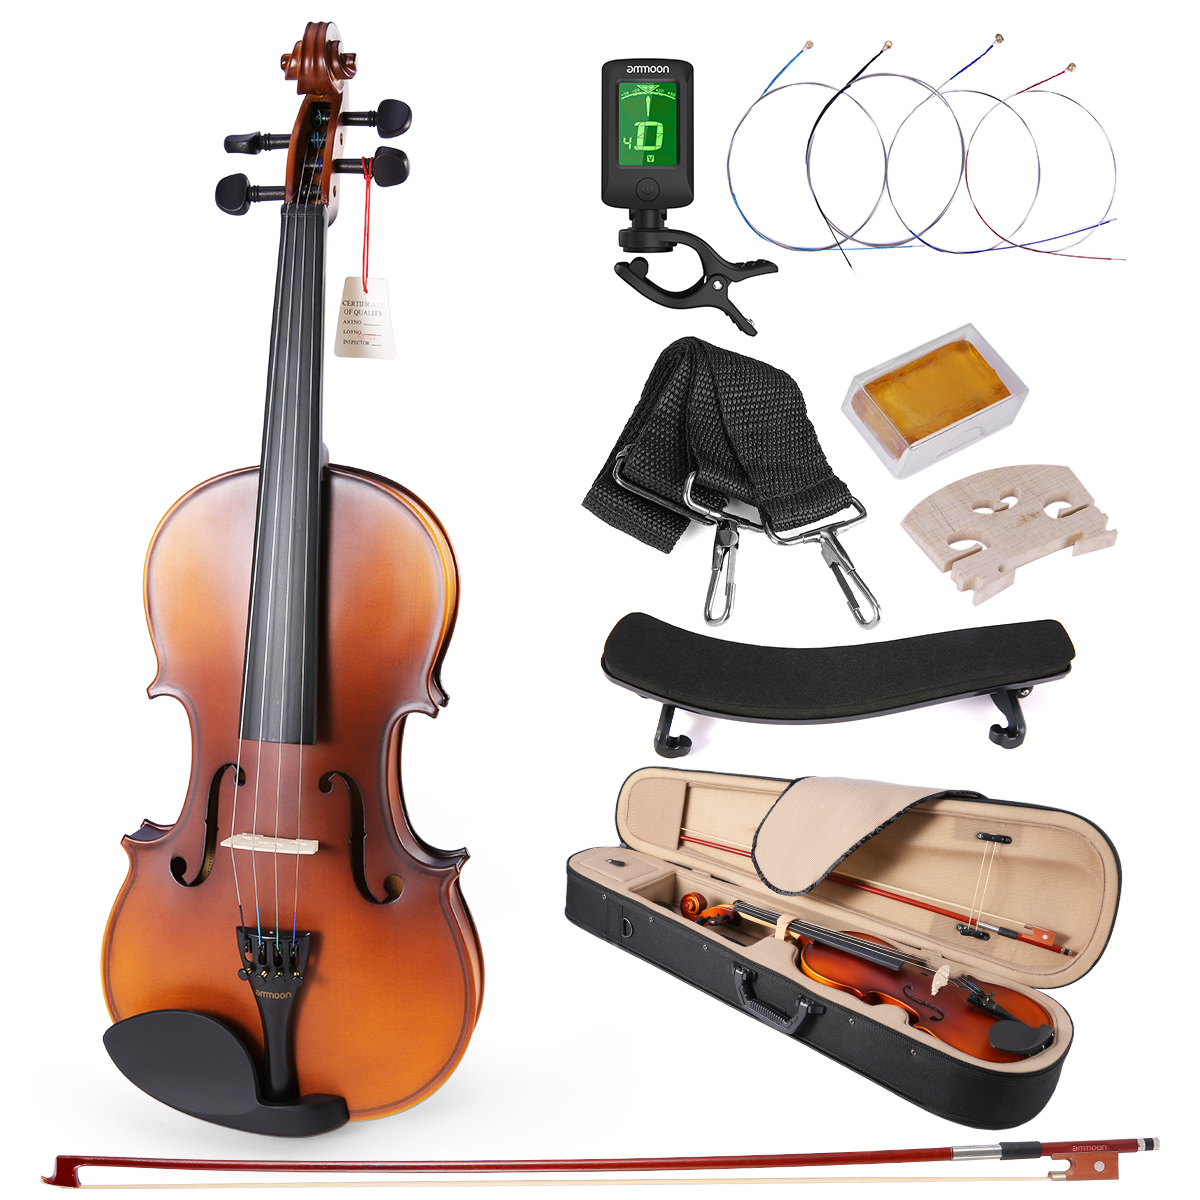 Dilwe 3 in 1 Violin Set Violin Tailpiece /& Tailpiece Rope /& Tuners Kits Set for 4//3 4//4 Violin Replacement Part